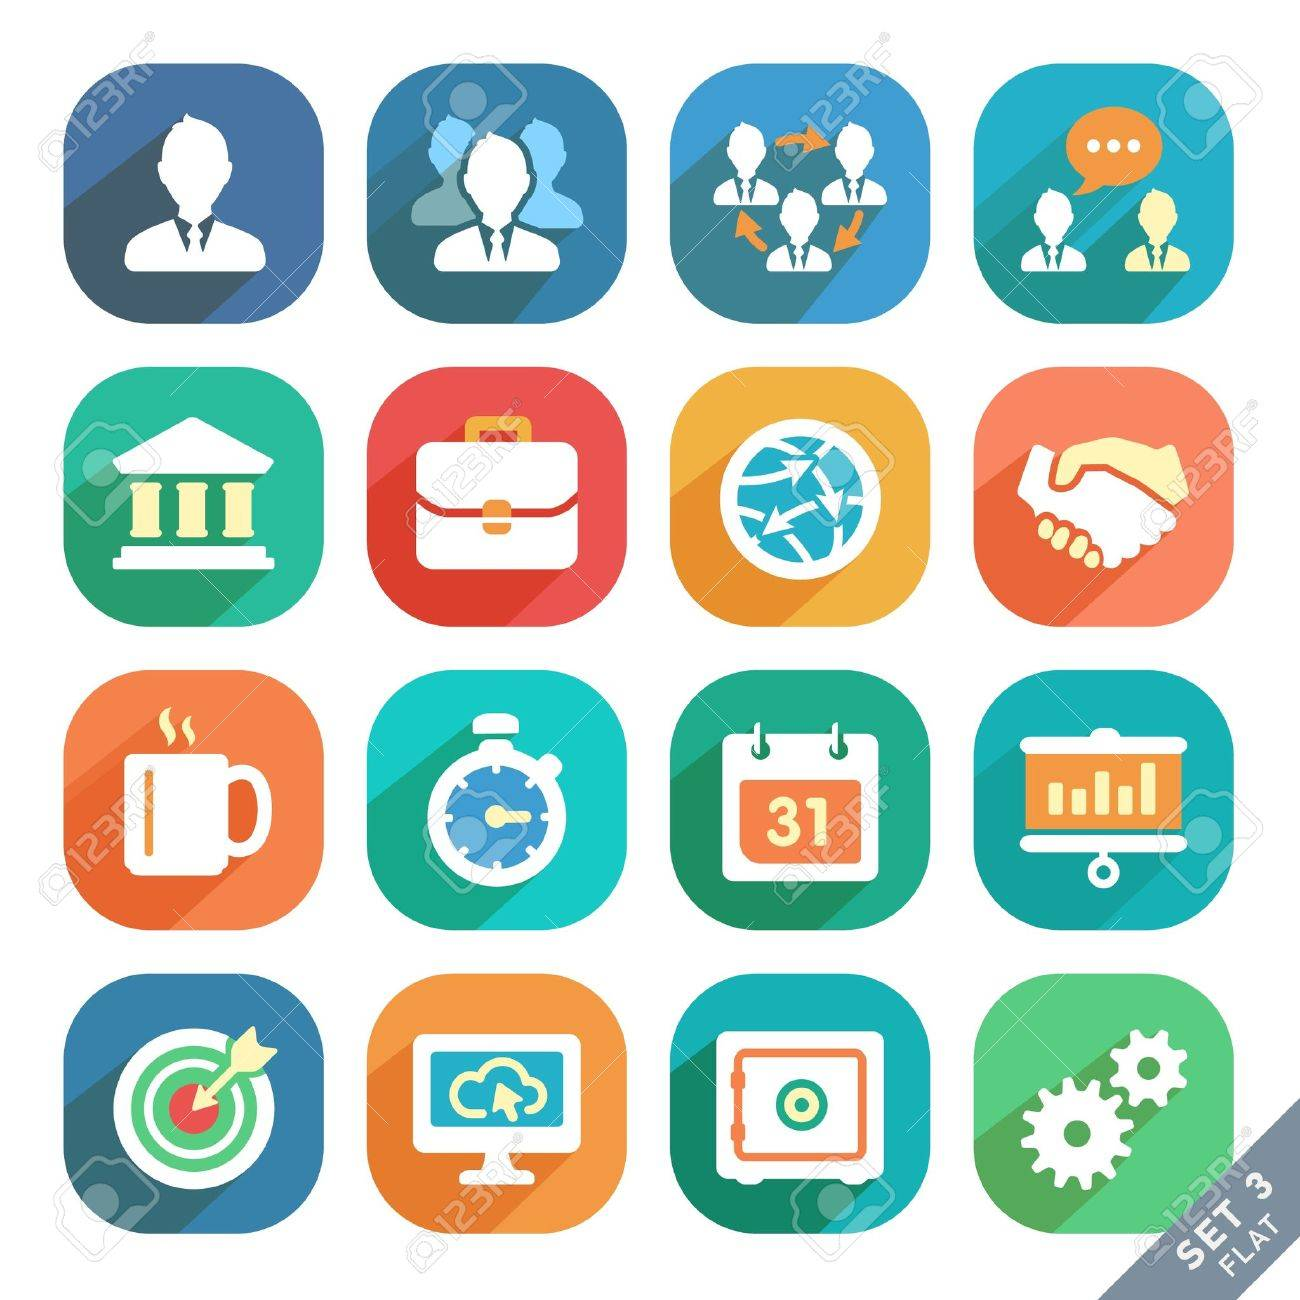 Office and business Flat icons for Web and Mobile Applications. Stock Vector - 20752370